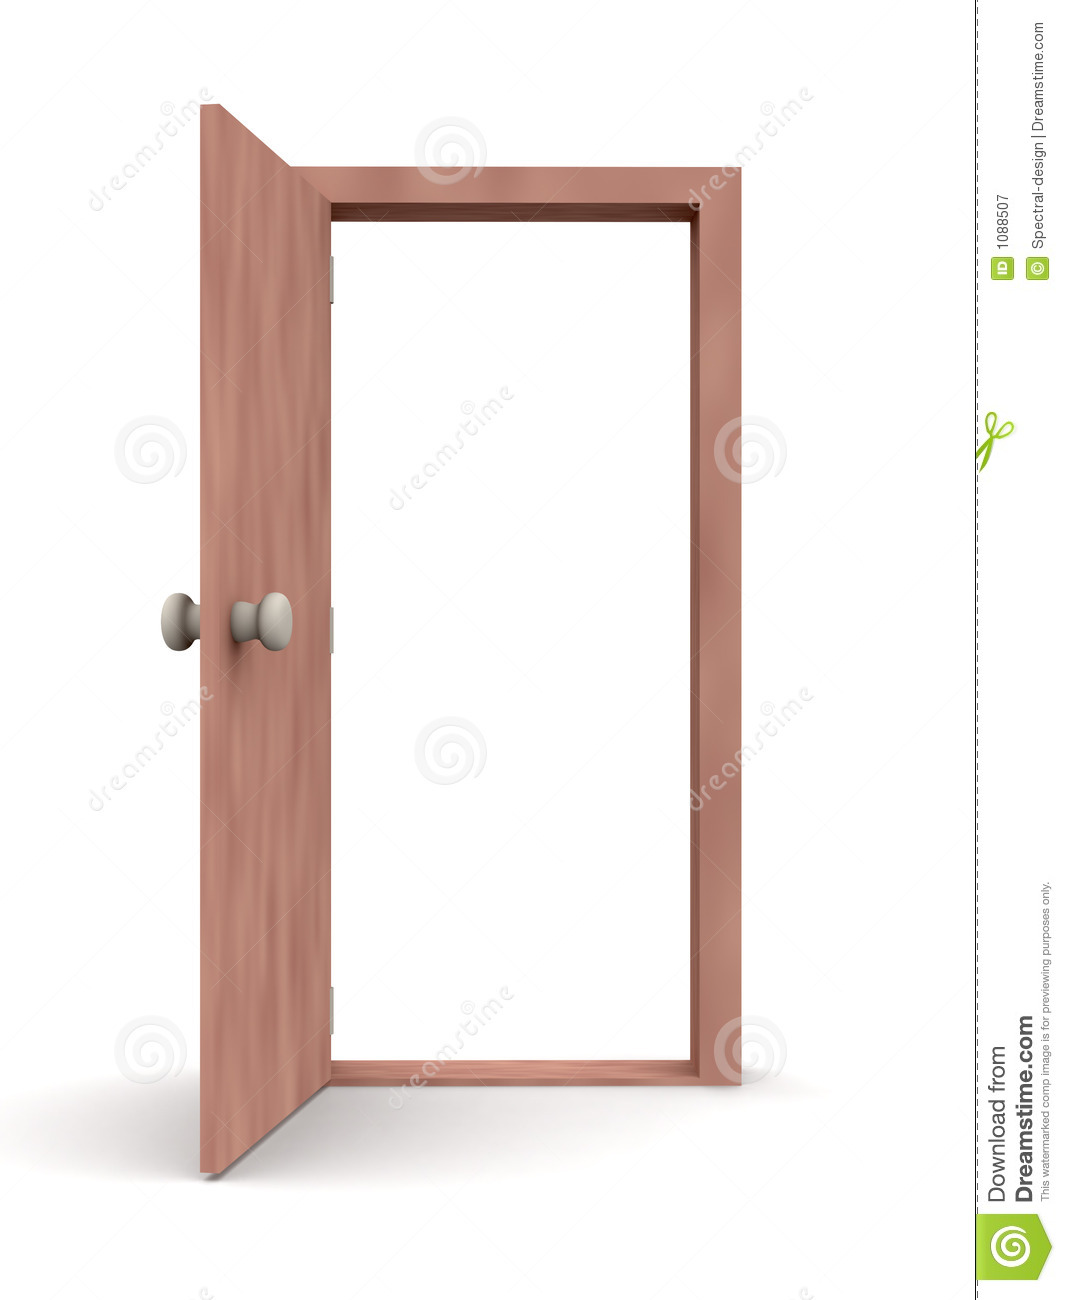 Open door cartoon style 1 royalty free stock photography for Porte ouverte